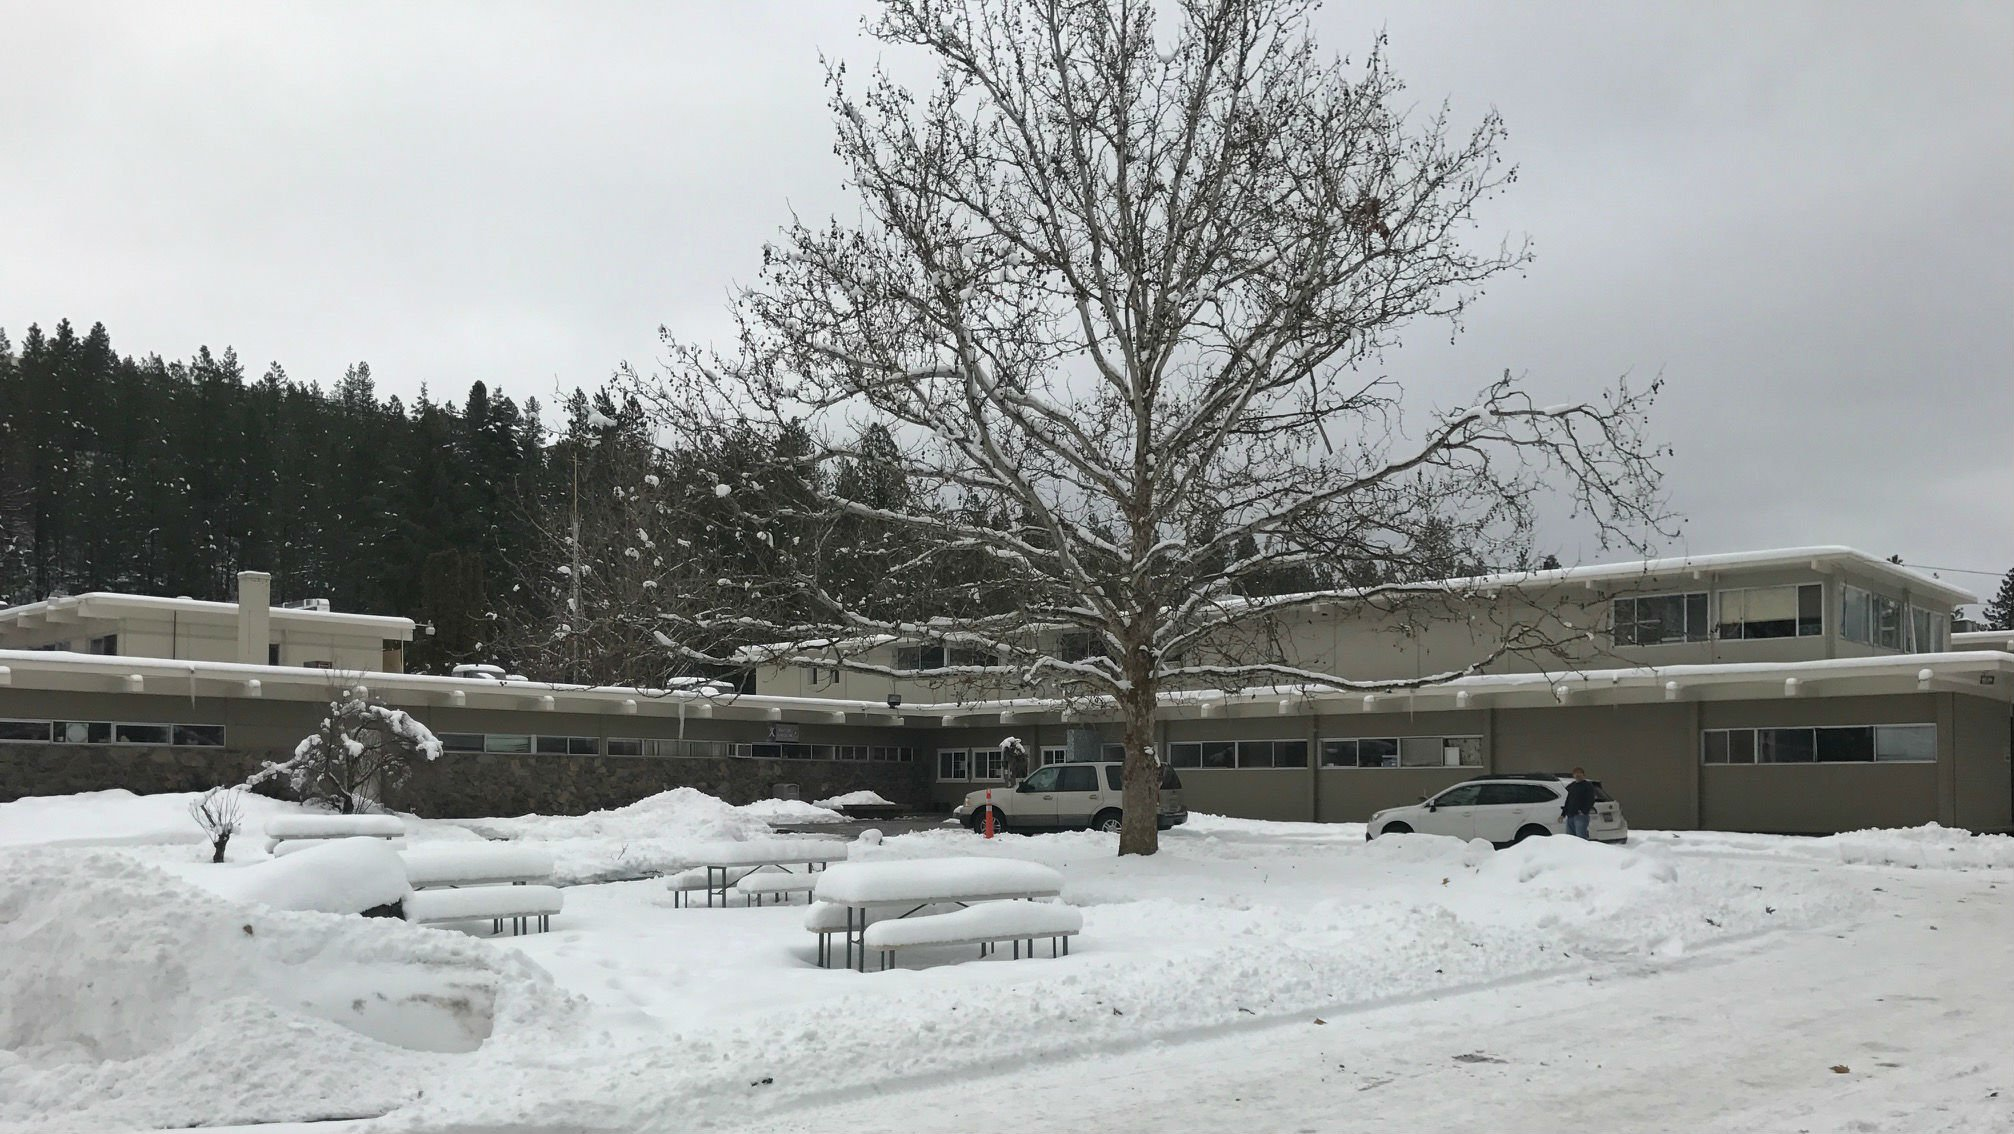 Detectives within the Spokane Police Department are investigating a rape involving a 10-year-old girl and a 13-year-old boy, both of them clients of Excelsior Youth Center.